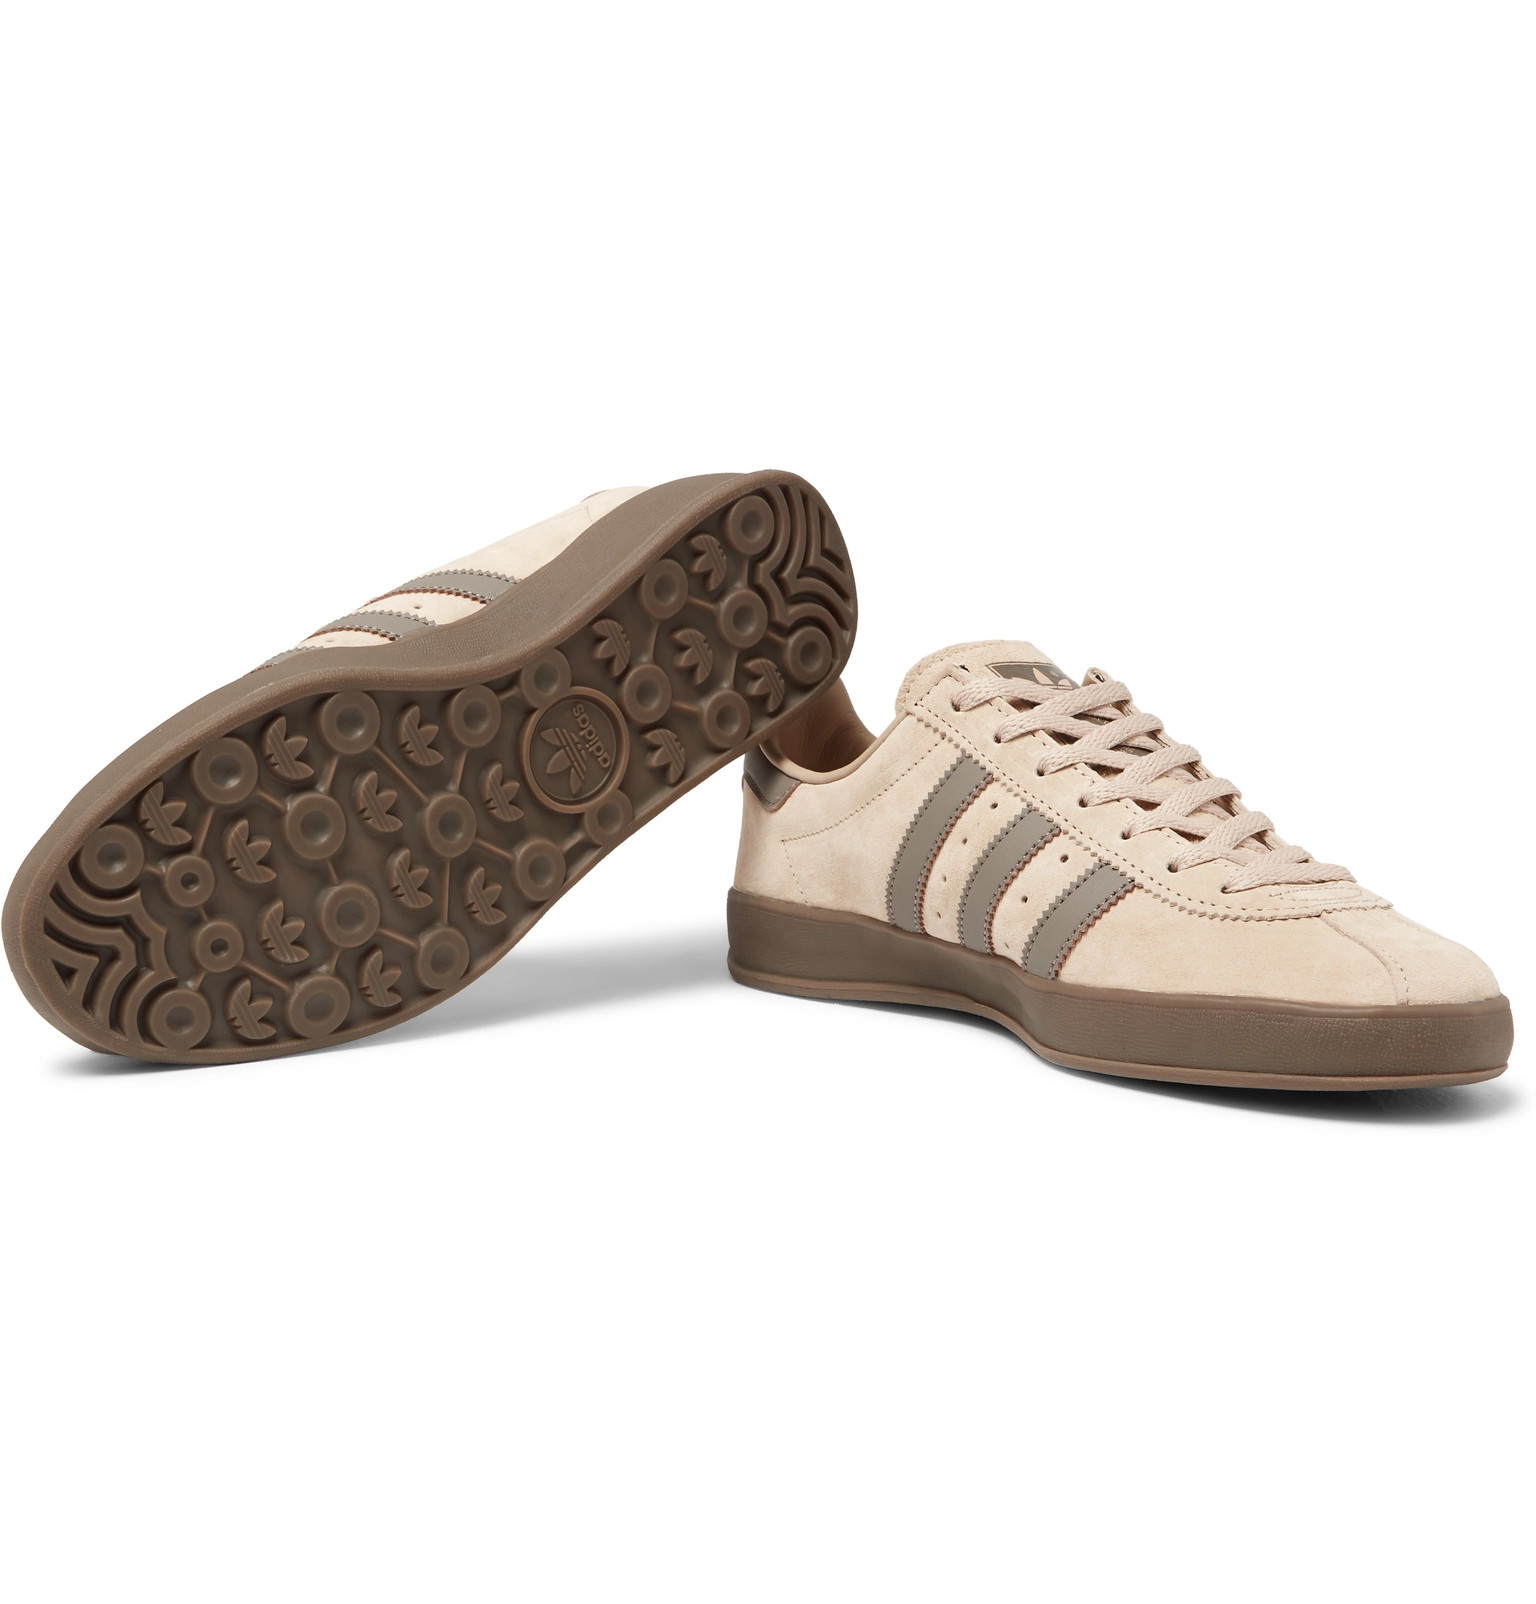 new products f4215 7295a adidas OriginalsBroomfield Leather-Trimmed Suede Sneakers